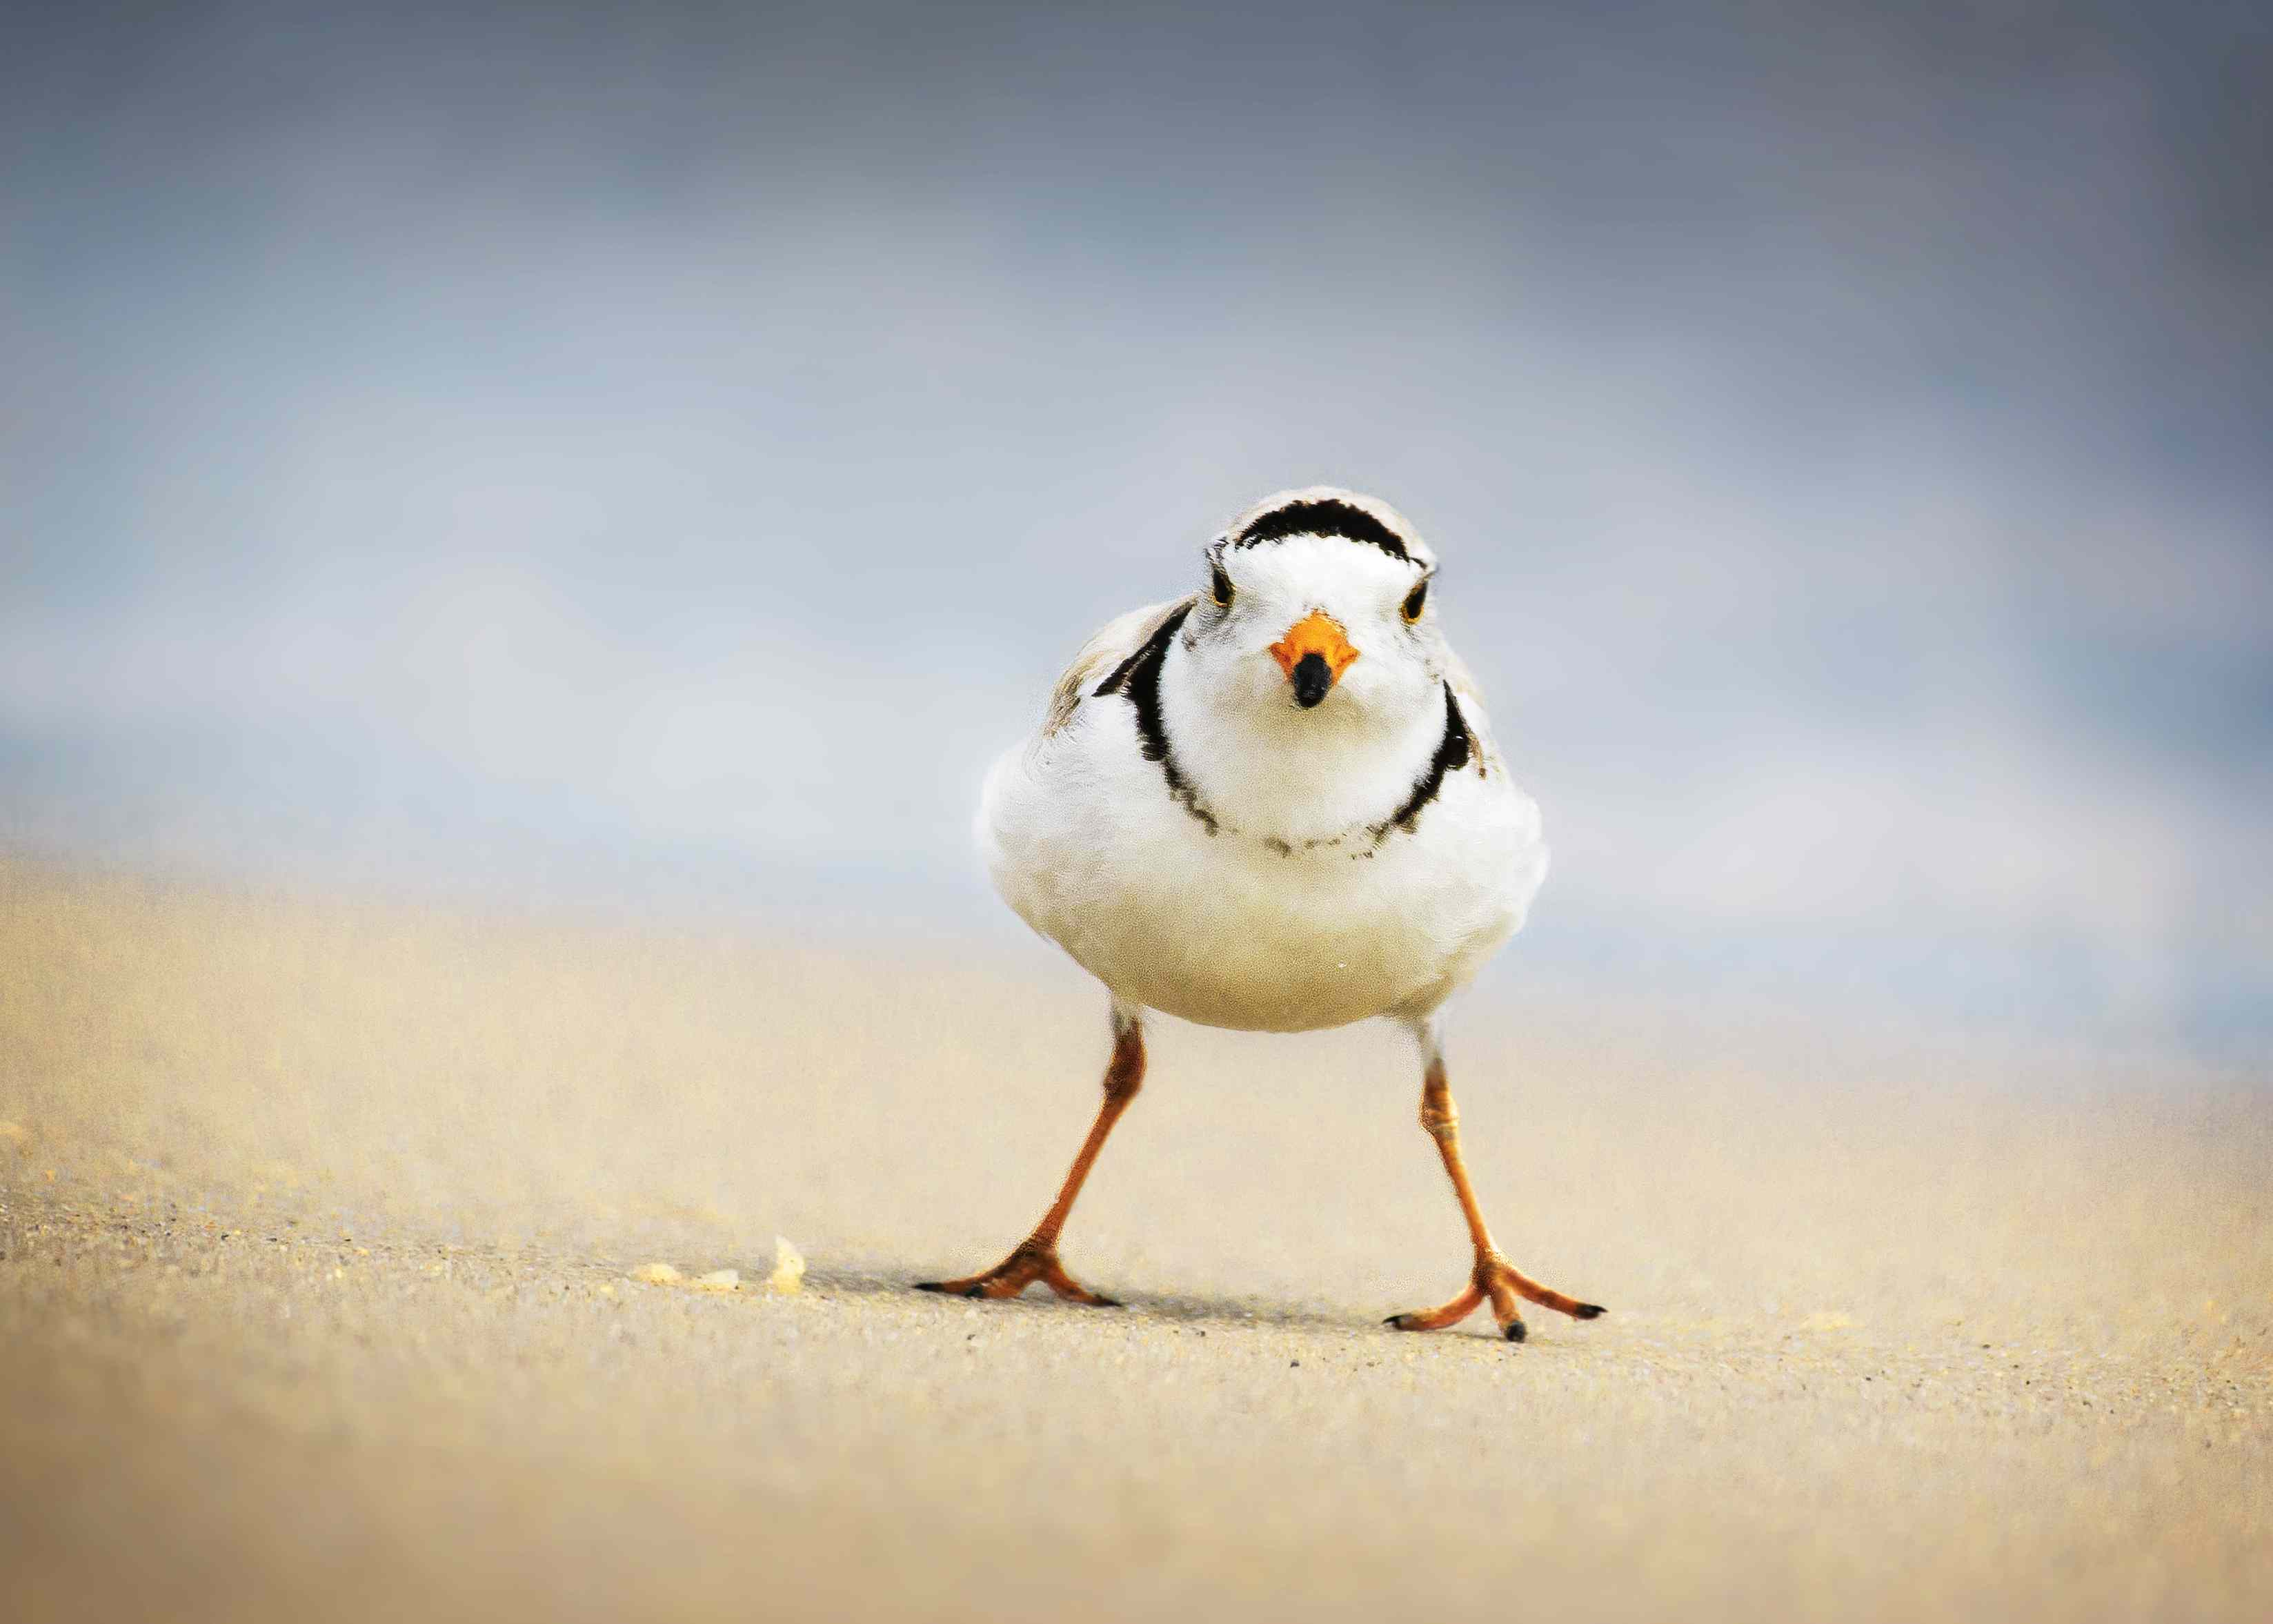 A piping plover with bright orange legs and orange beak standing on a beach.